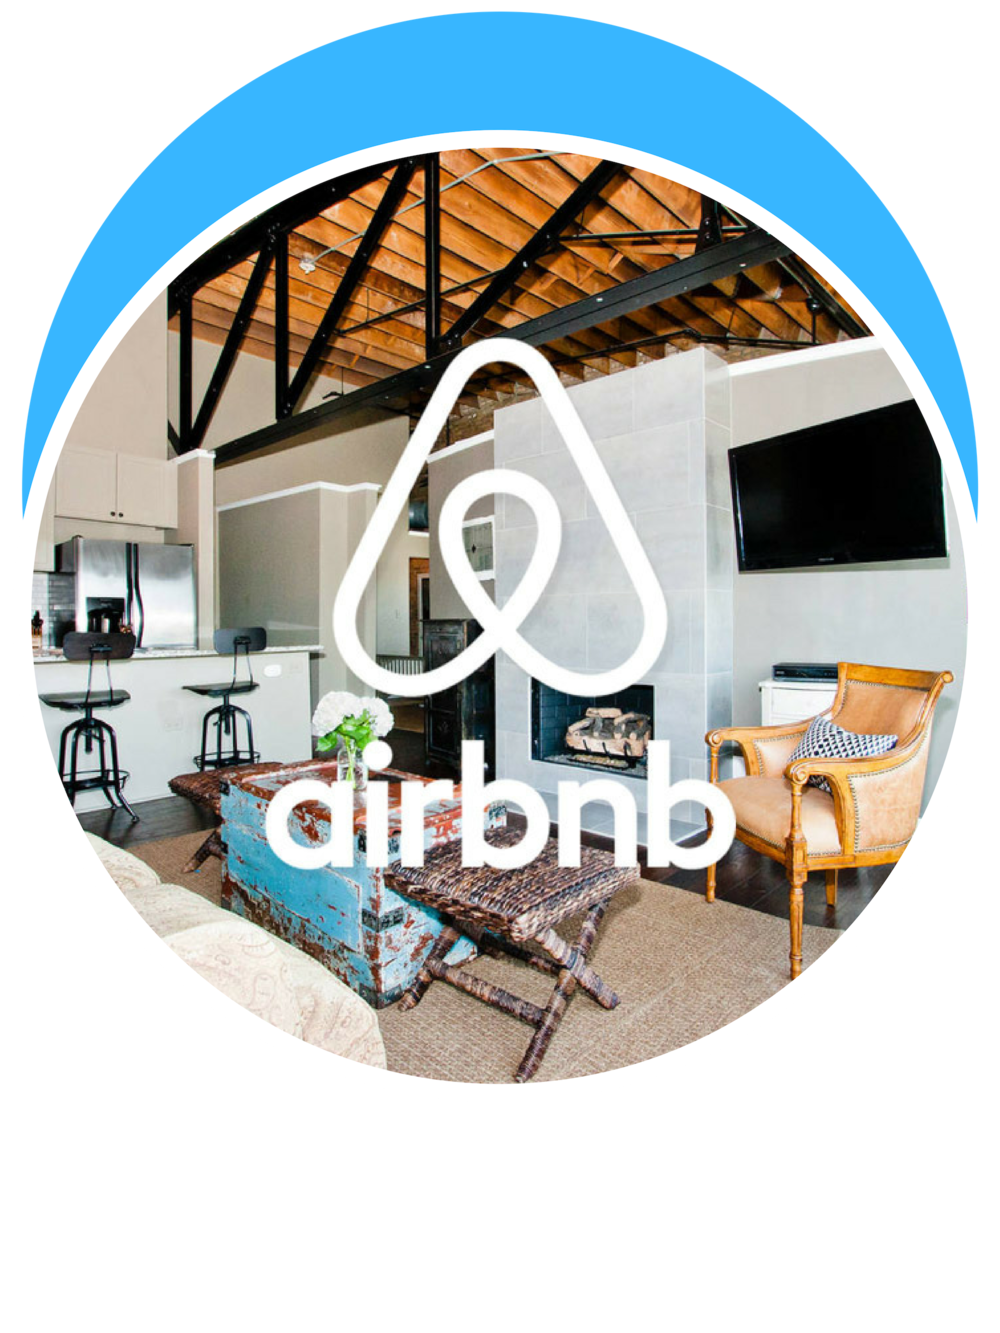 - If you own or manage an airbnb , or several , you know how difficult and time consuming cleaning the property after every guest can be. You have a tight schedule to clean all your airbnb properties, especially when your guest leave in the morning and the new guest are arriving in the afternoon, all at once. Let our team take that load off your hands and give you the peace of mind, besides you have a business to run and a life to live.